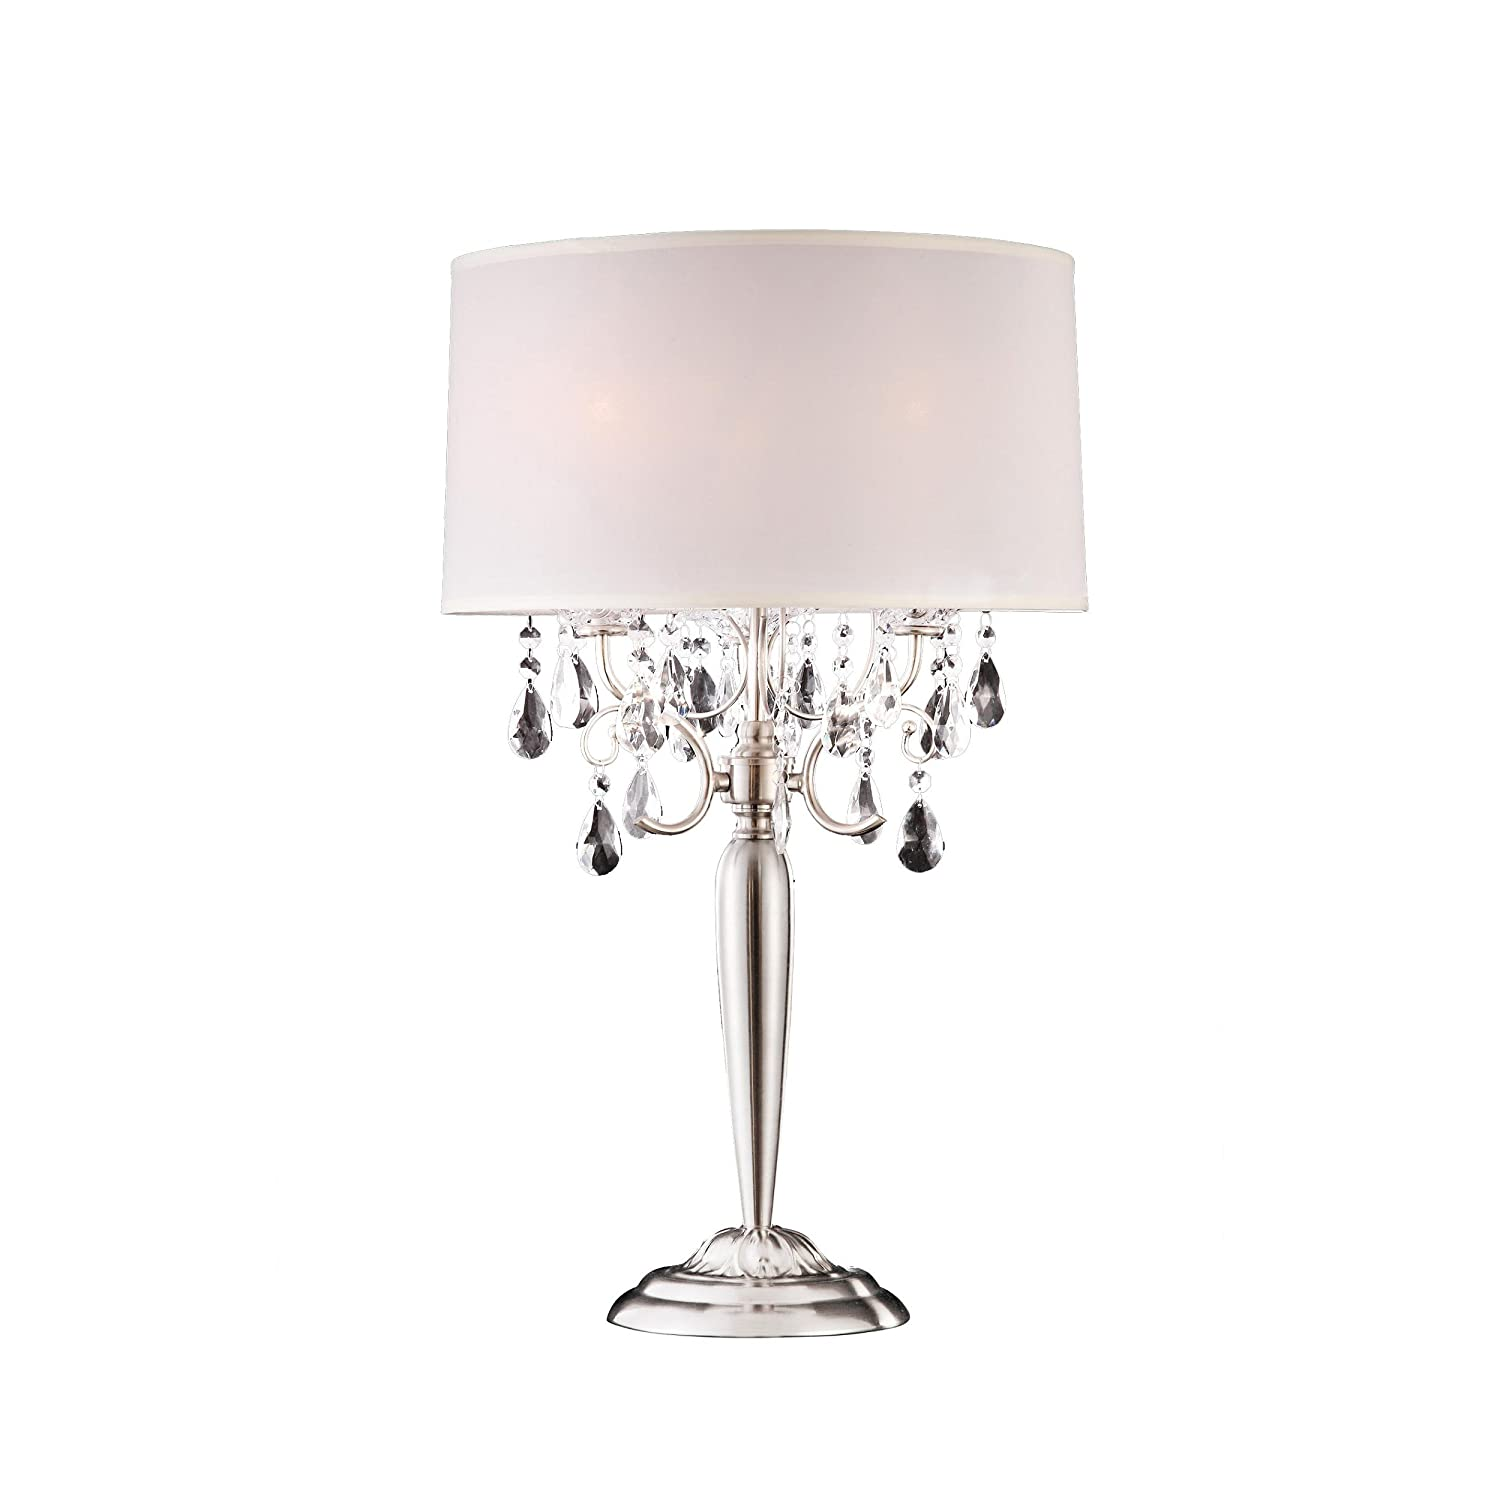 OK 5109T 30 Inch Crystal Silver Table Lamp Floor Lamps Amazon